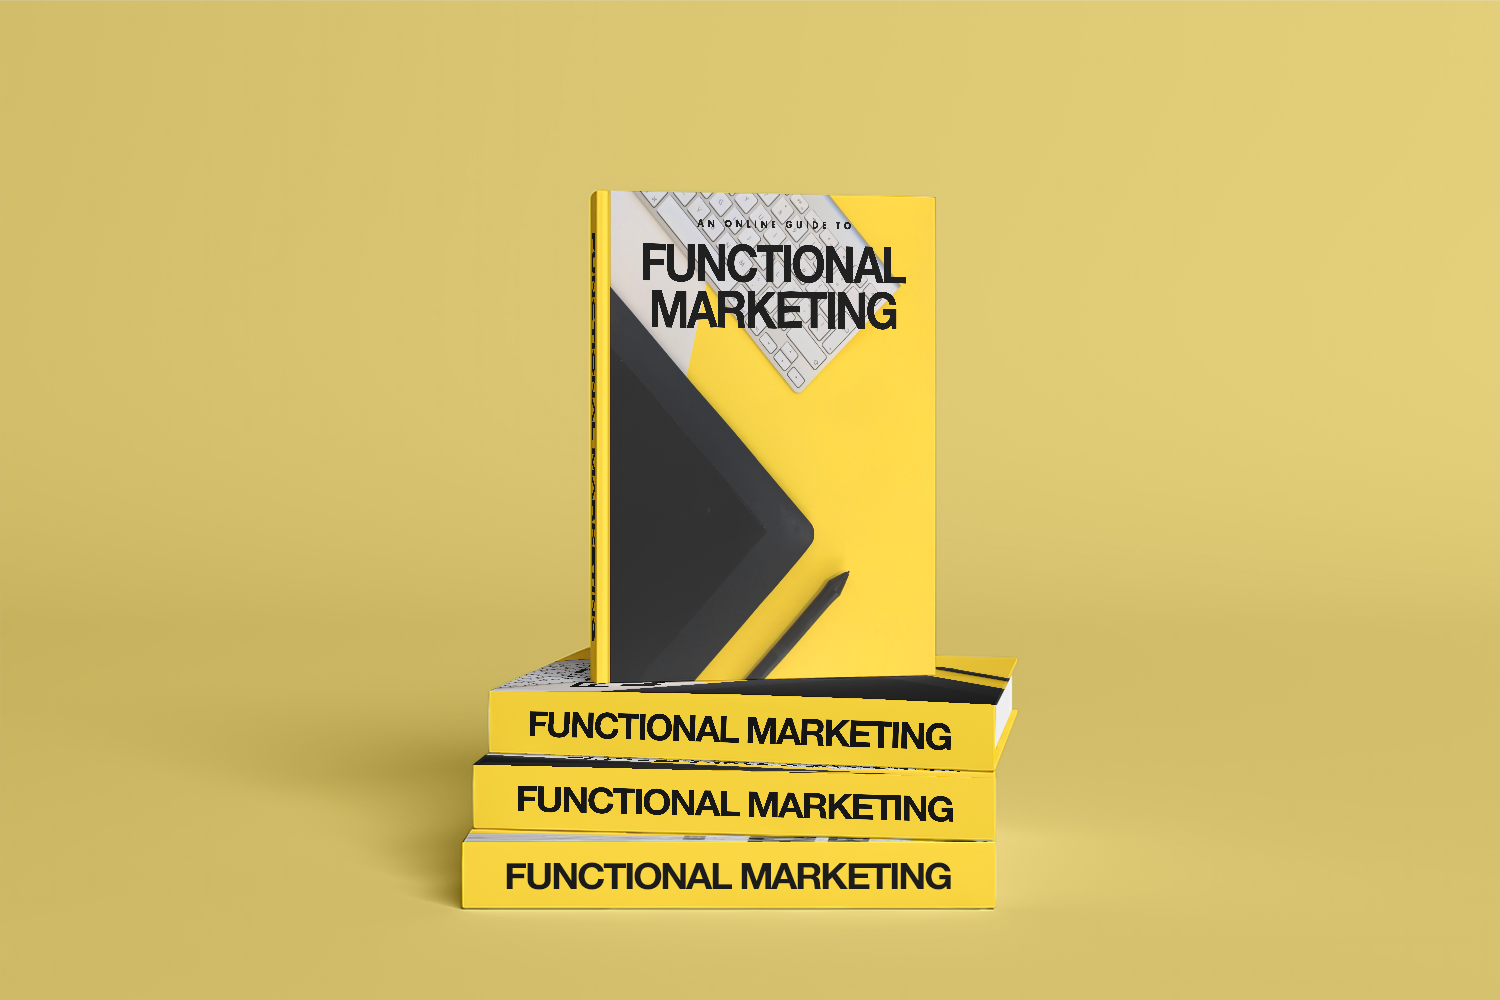 """A link to """"Functional Marketing"""" featuring the guide in book form."""